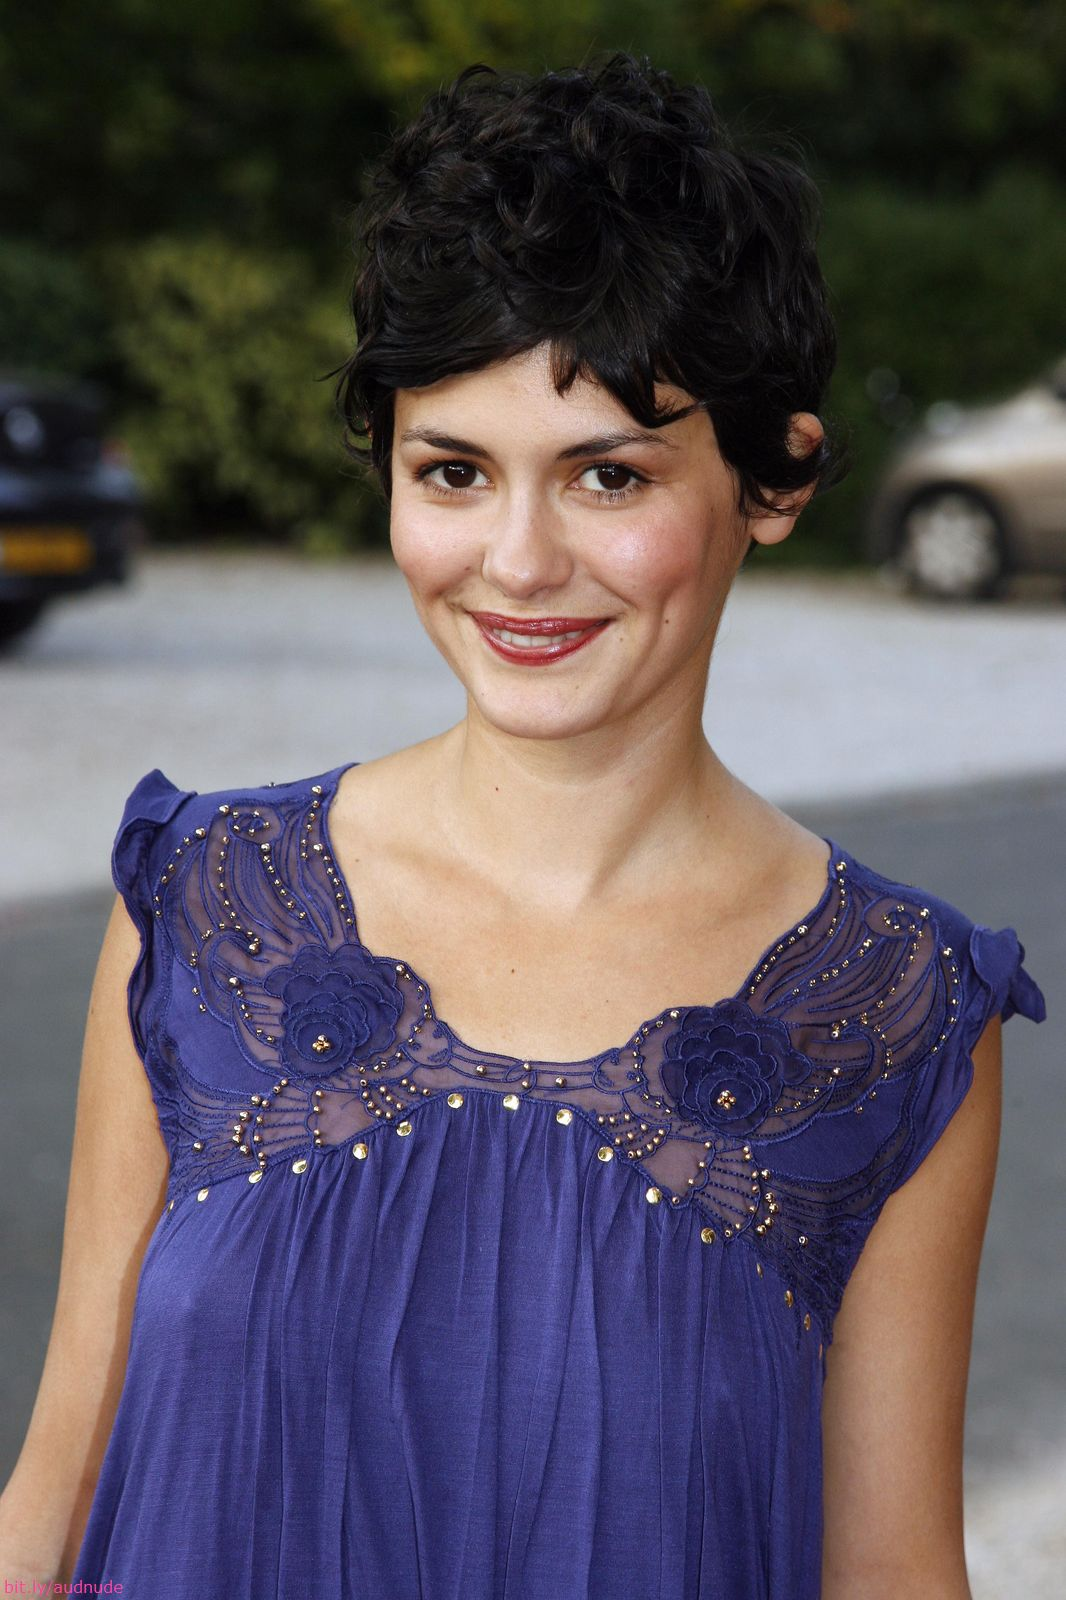 Audrey Tautou Nude - Not Just Another Cute French Girl (85